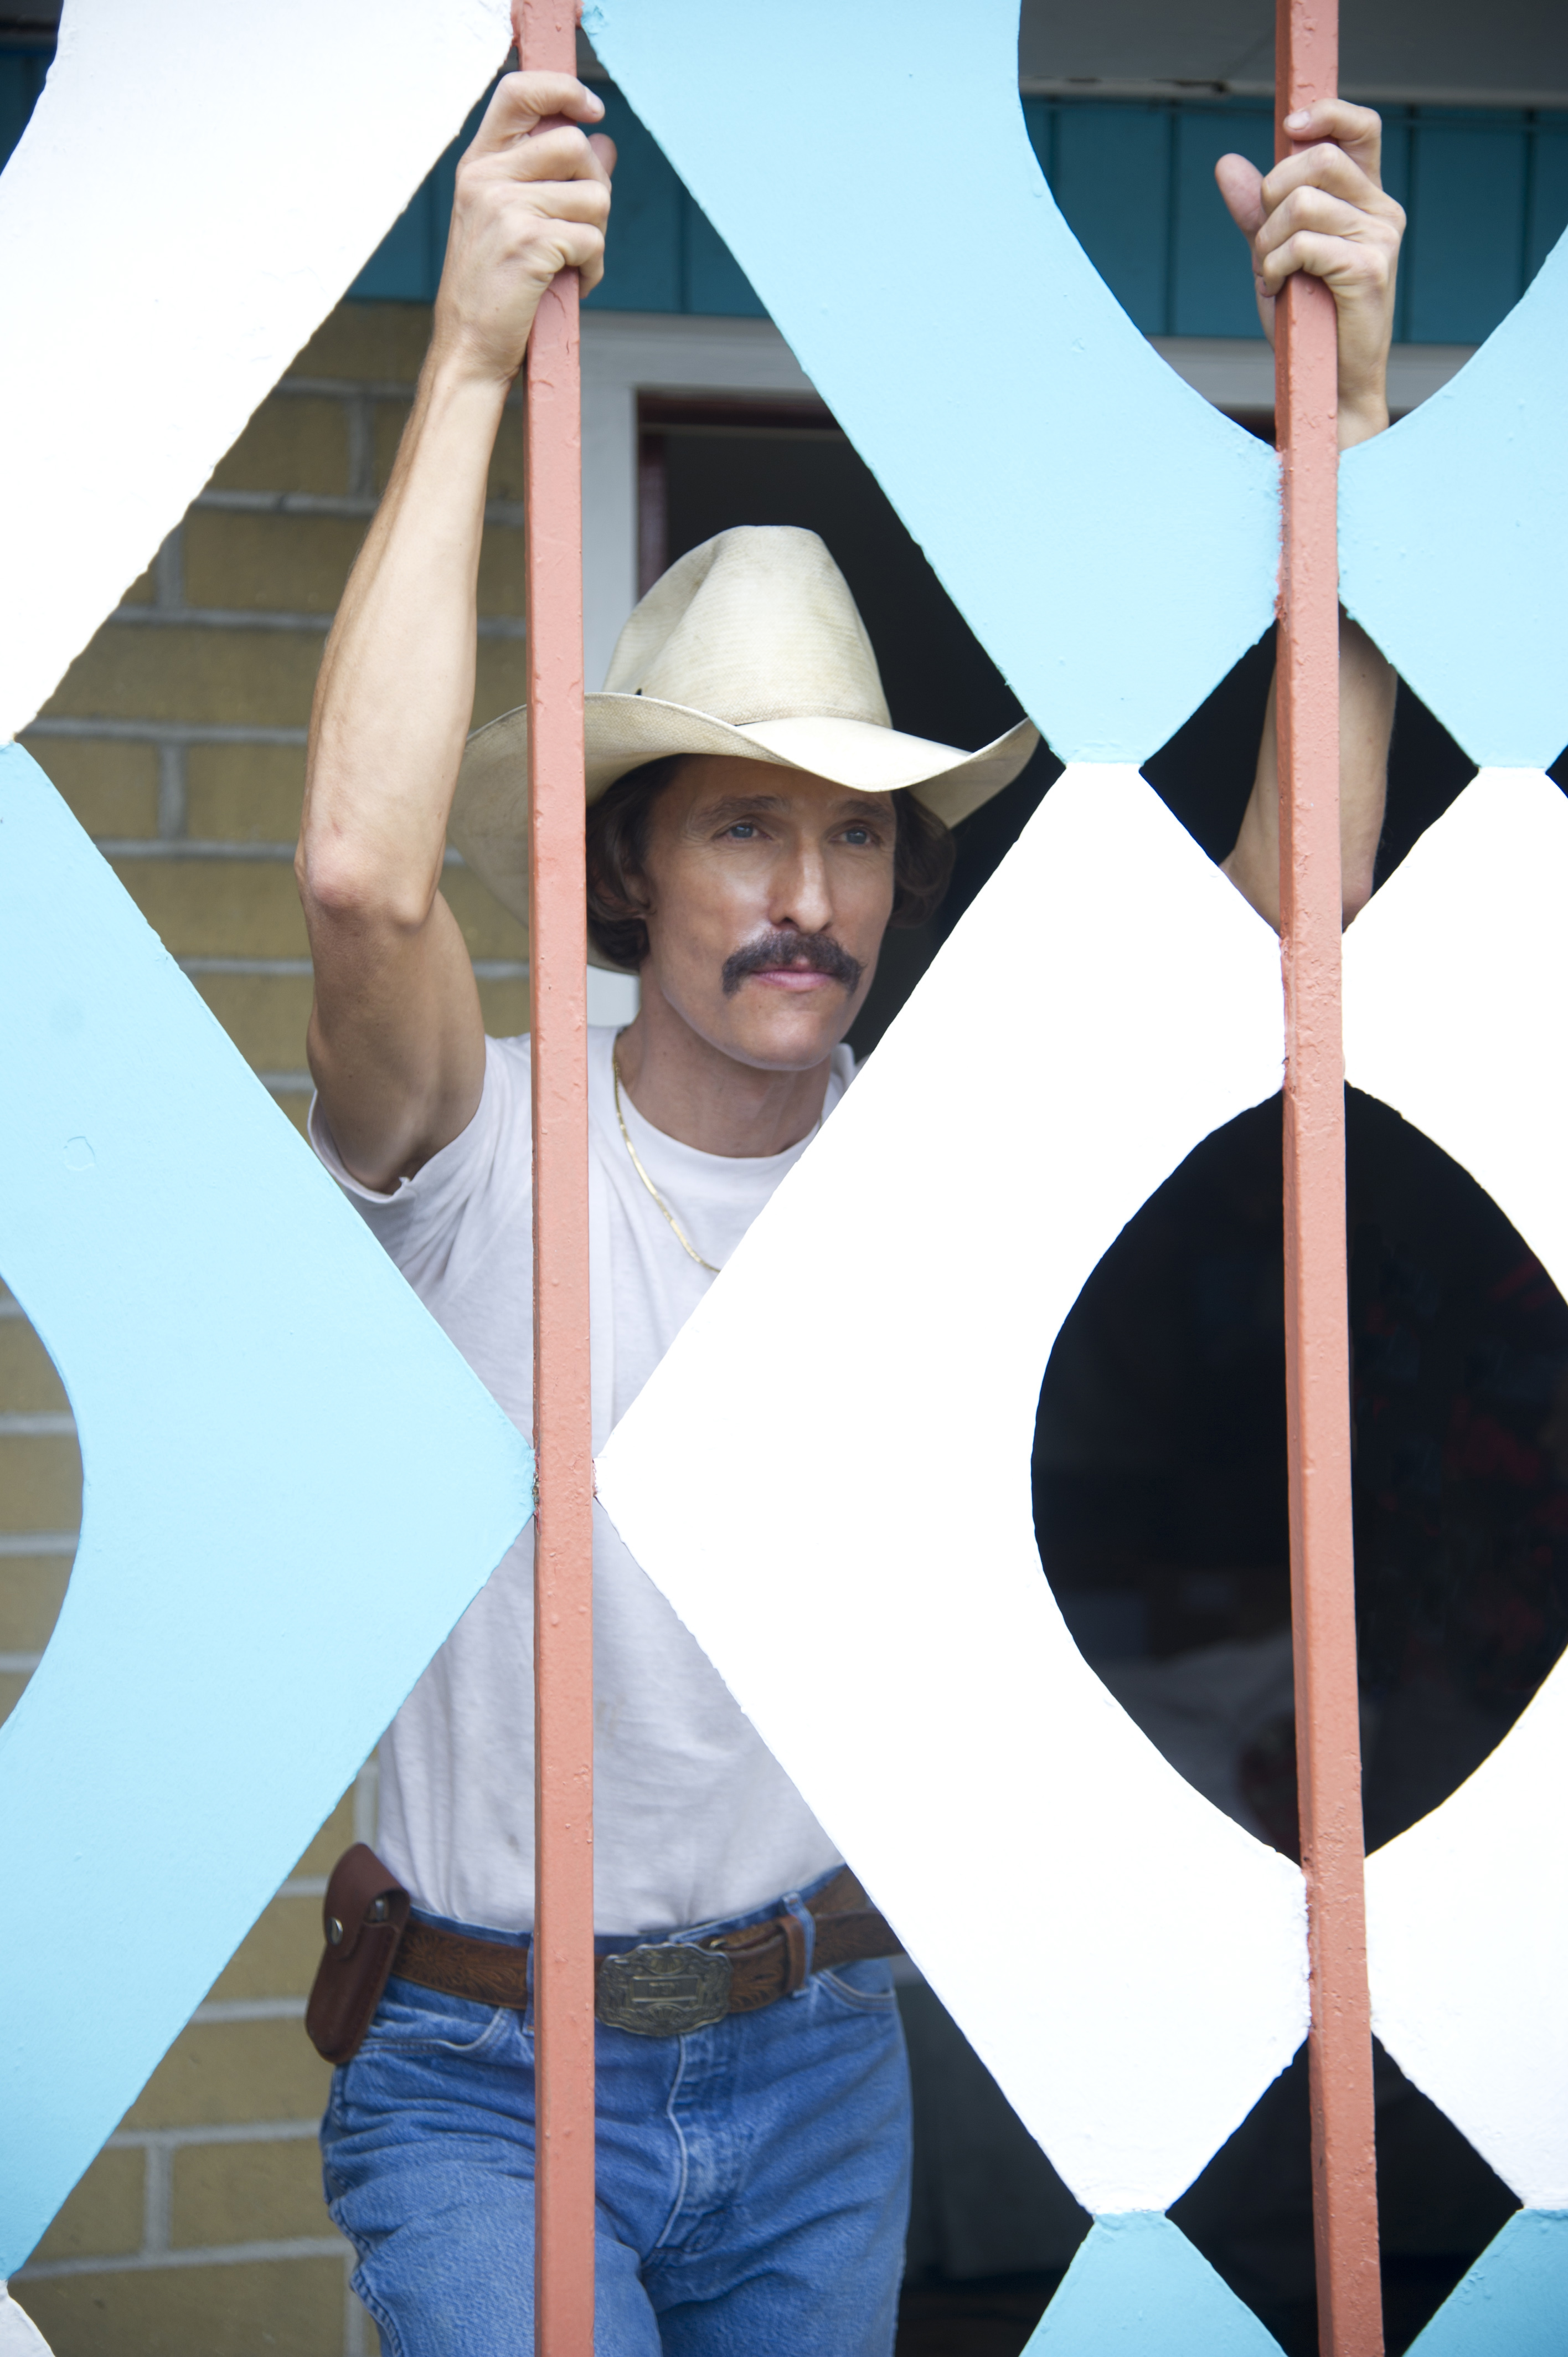 'Dallas Buyers Club' accurately portrays Oak Lawn's in-your-face tactics